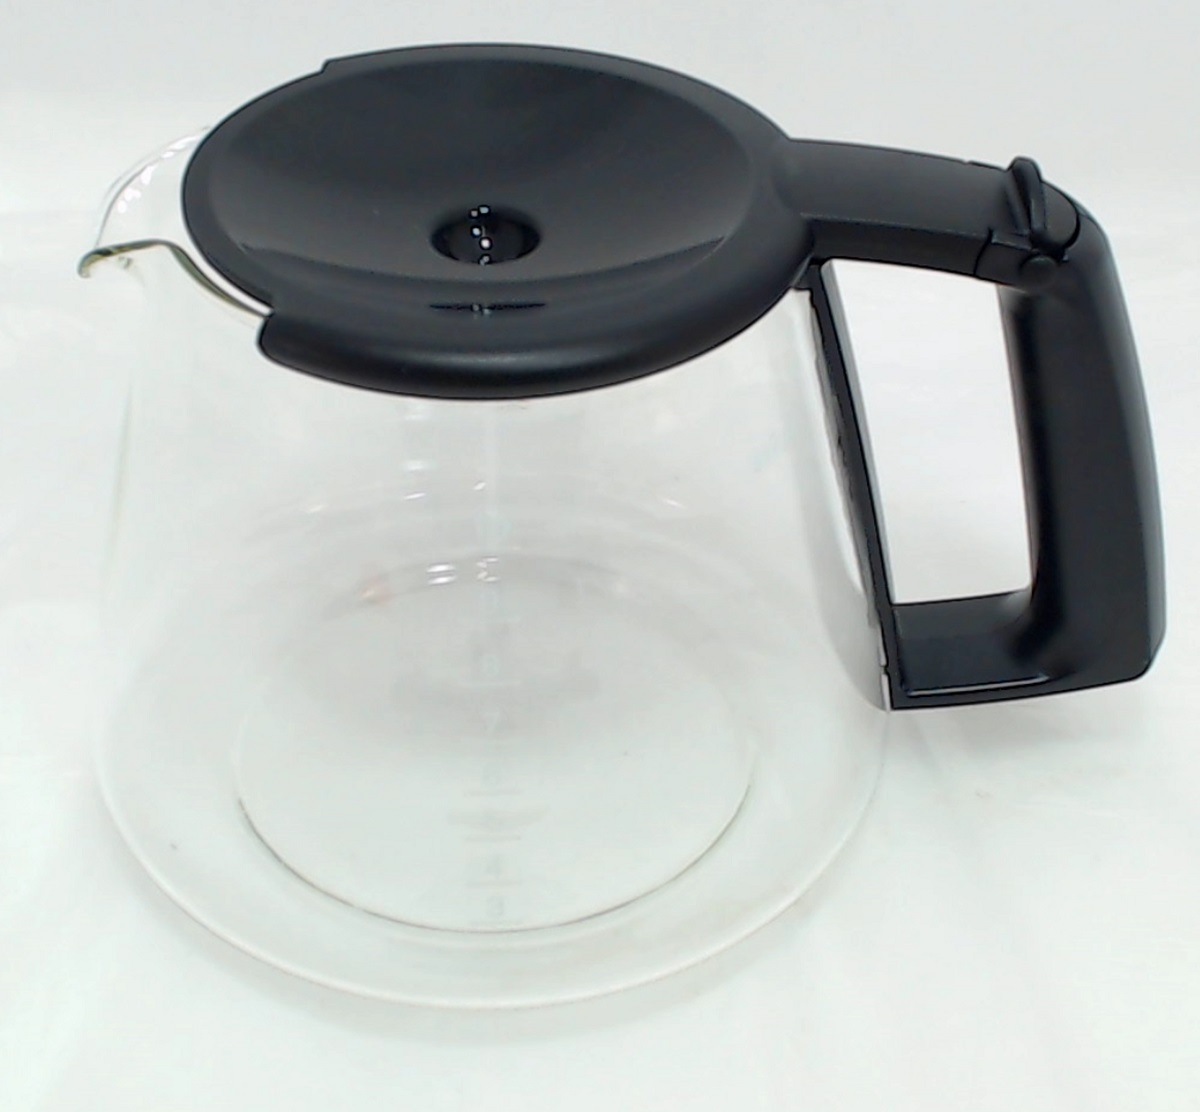 67050717 - Braun Coffee Maker Carafe, Black